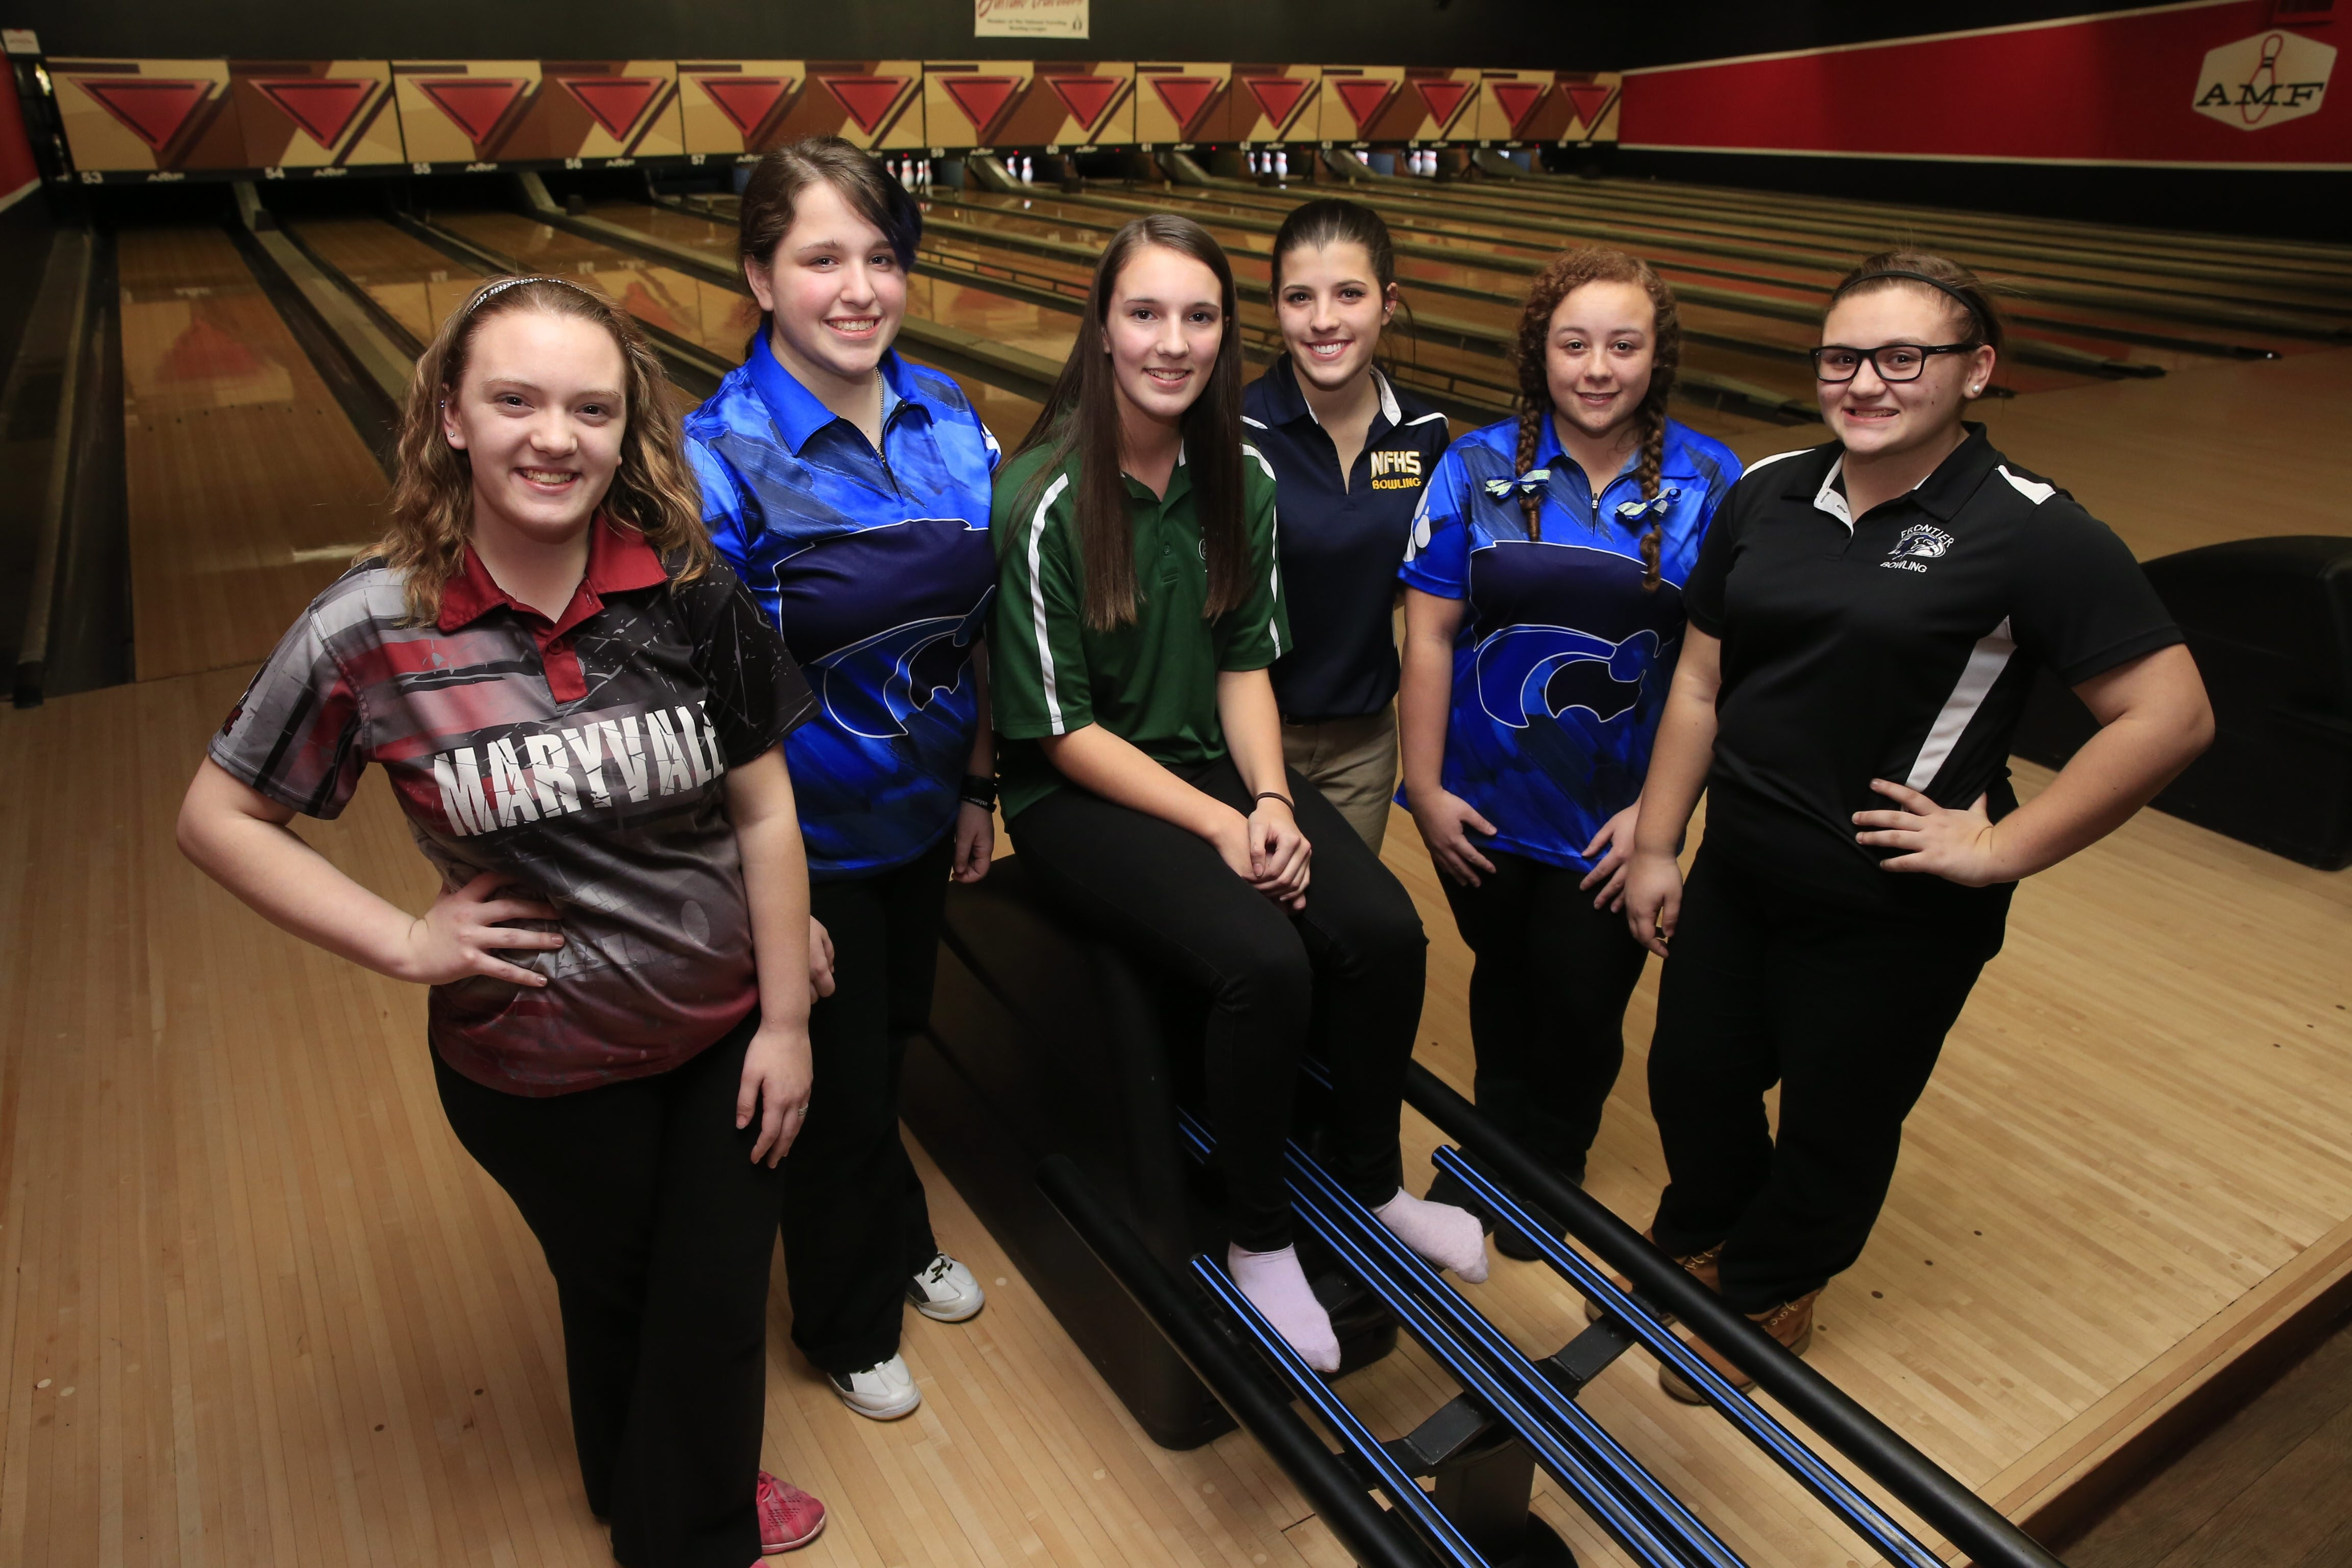 These six high school bowlers are heading to the states: From left, Kayli Christ, Maryvale; Rachel Wagner, Depew; Cameron Spring, Allegany-Limestone; Angela Gabriele, Niagara Falls; Sarah Godfrey, Depew; and Brittany McAndrews, Frontier. They were at the Section VI bowling championships at Airport Lanes on Thursday.